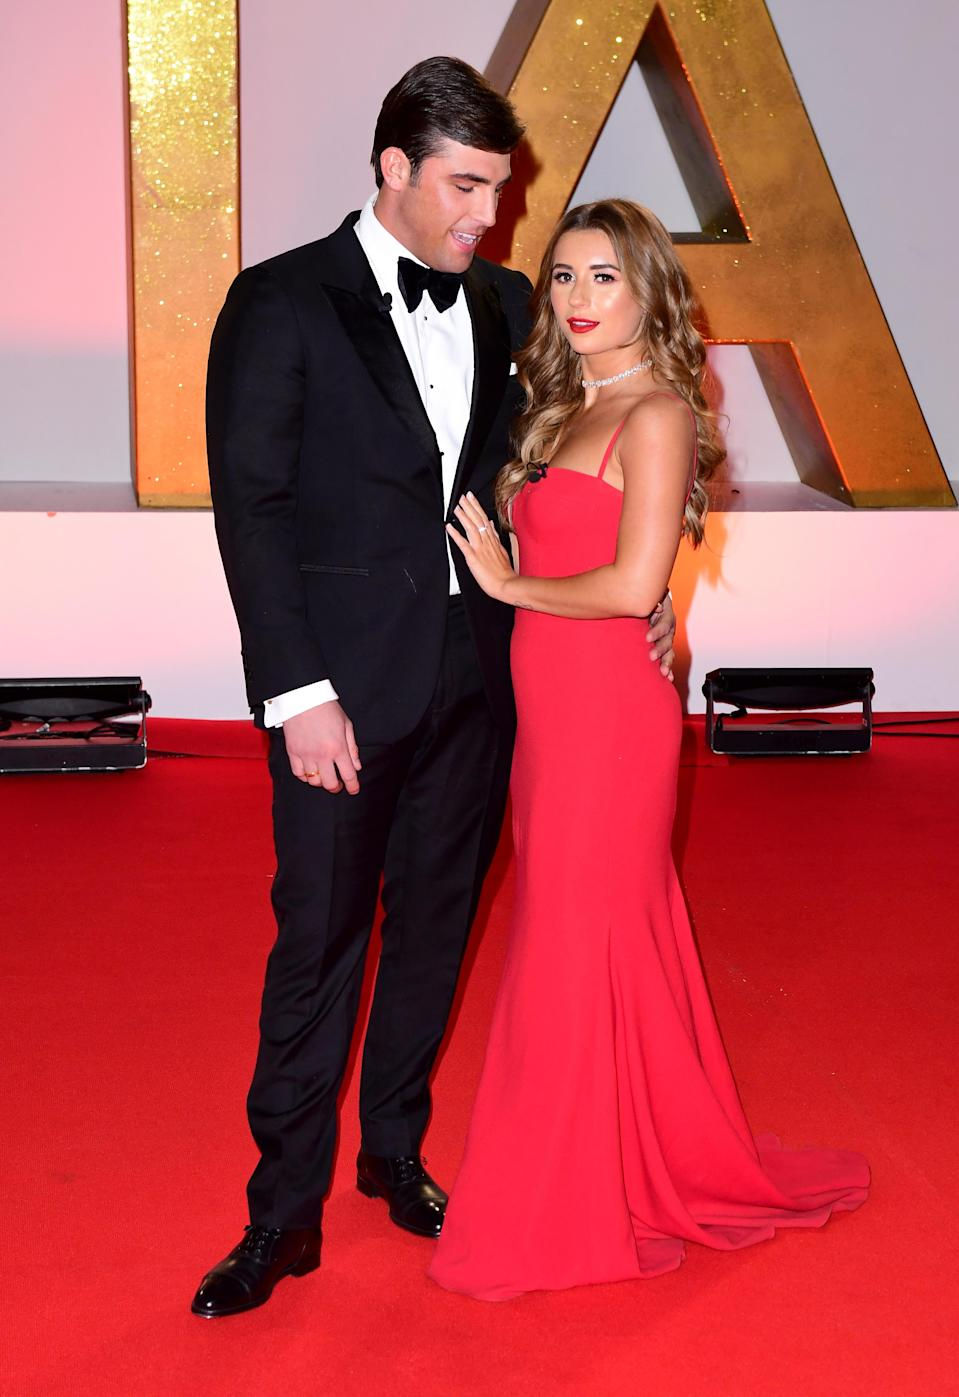 Jack Fincham (left) and Dani Dyer attending the National Television Awards 2019 held at the O2 Arena, London. (Credit: Ian West/PA Images via Getty Images)